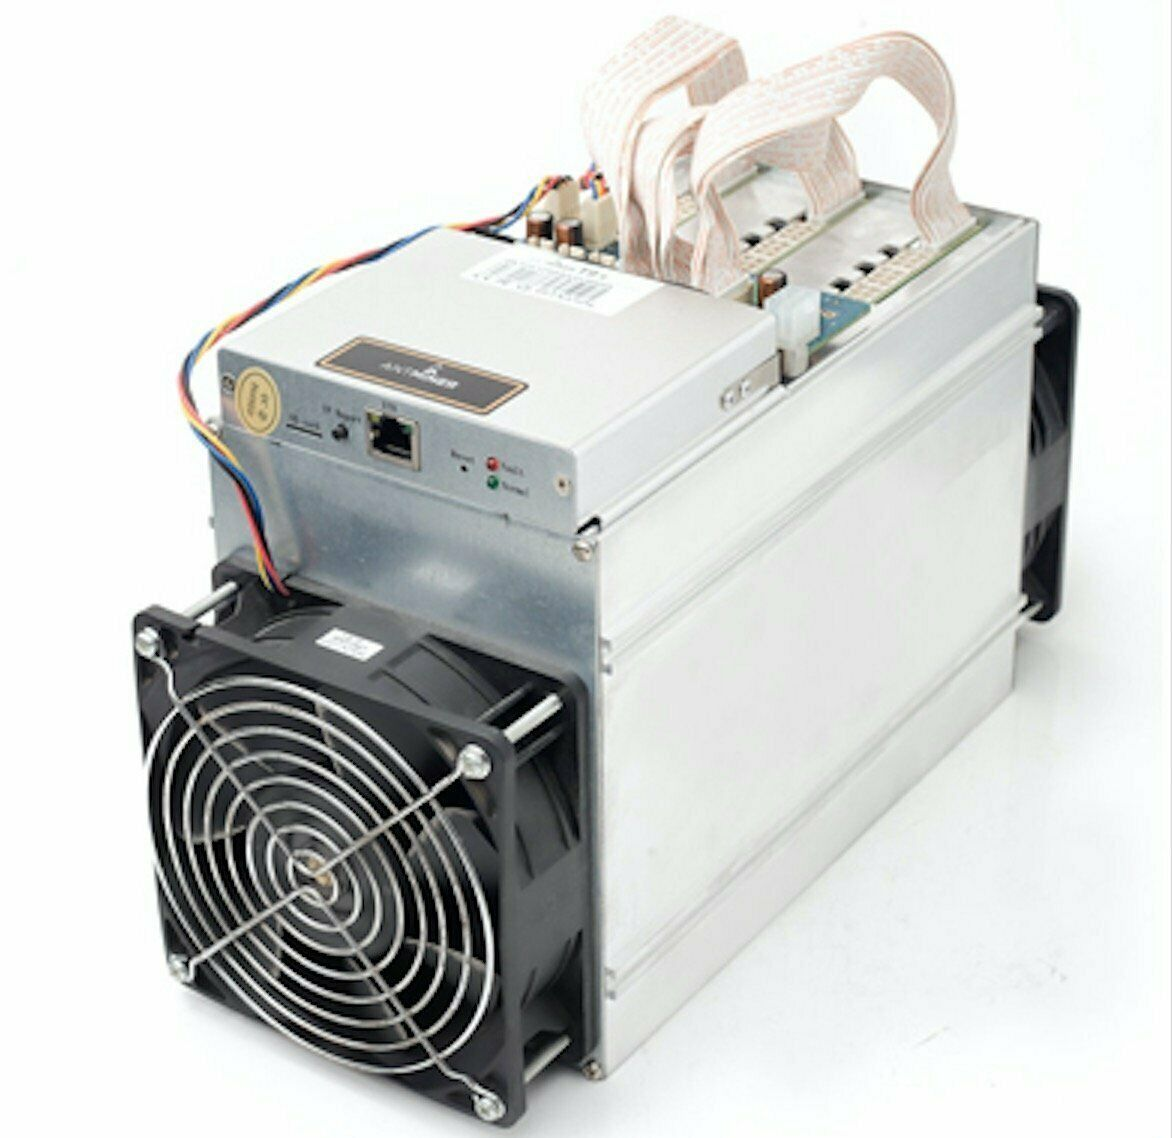 can you use the antminer for other cryptocurrency